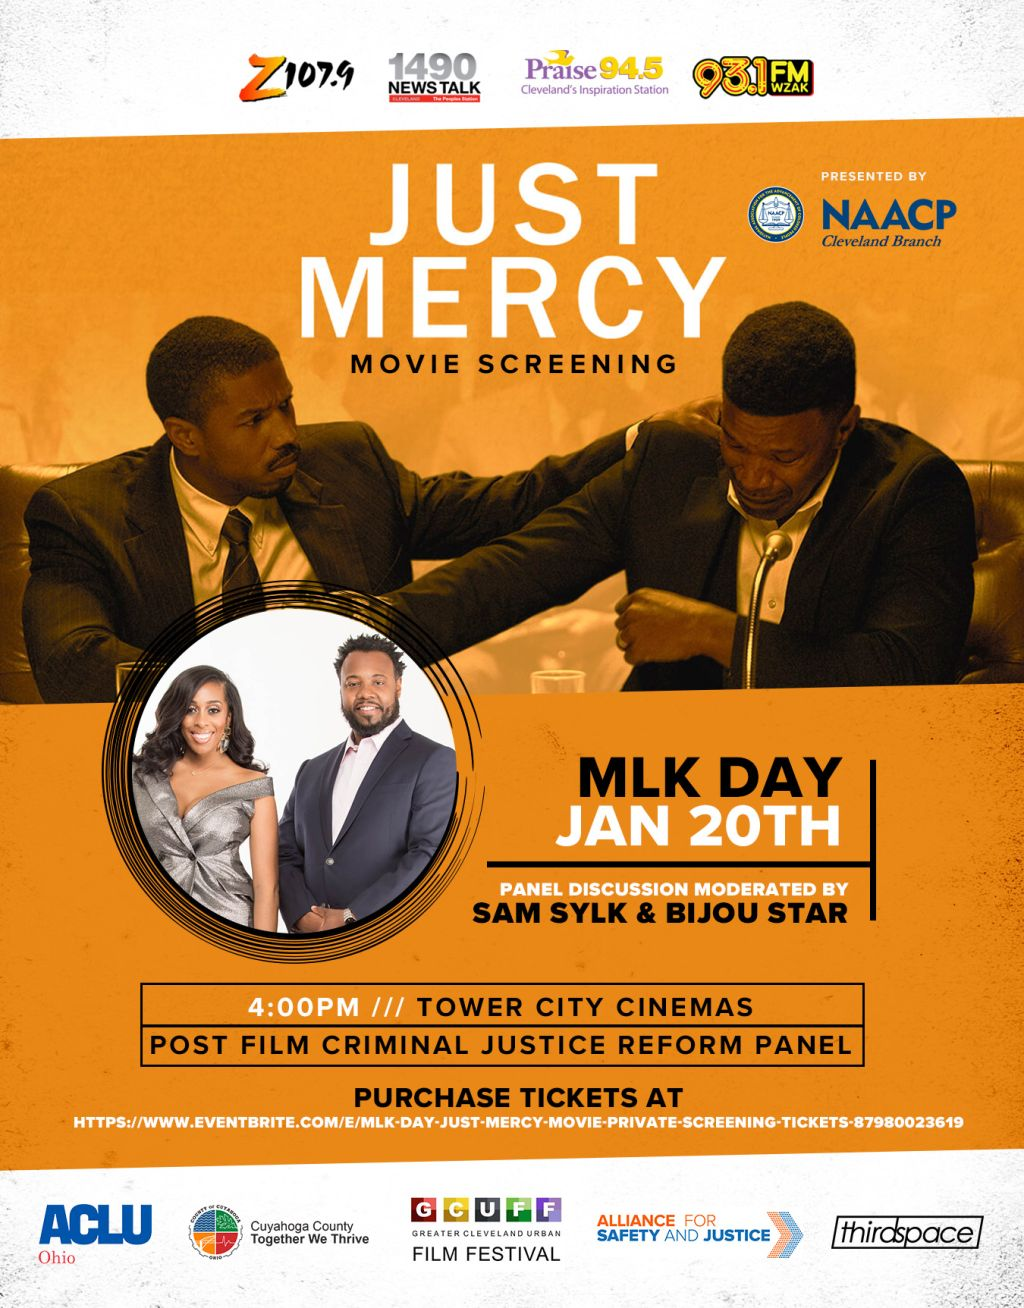 Just Mercy Movie Screening